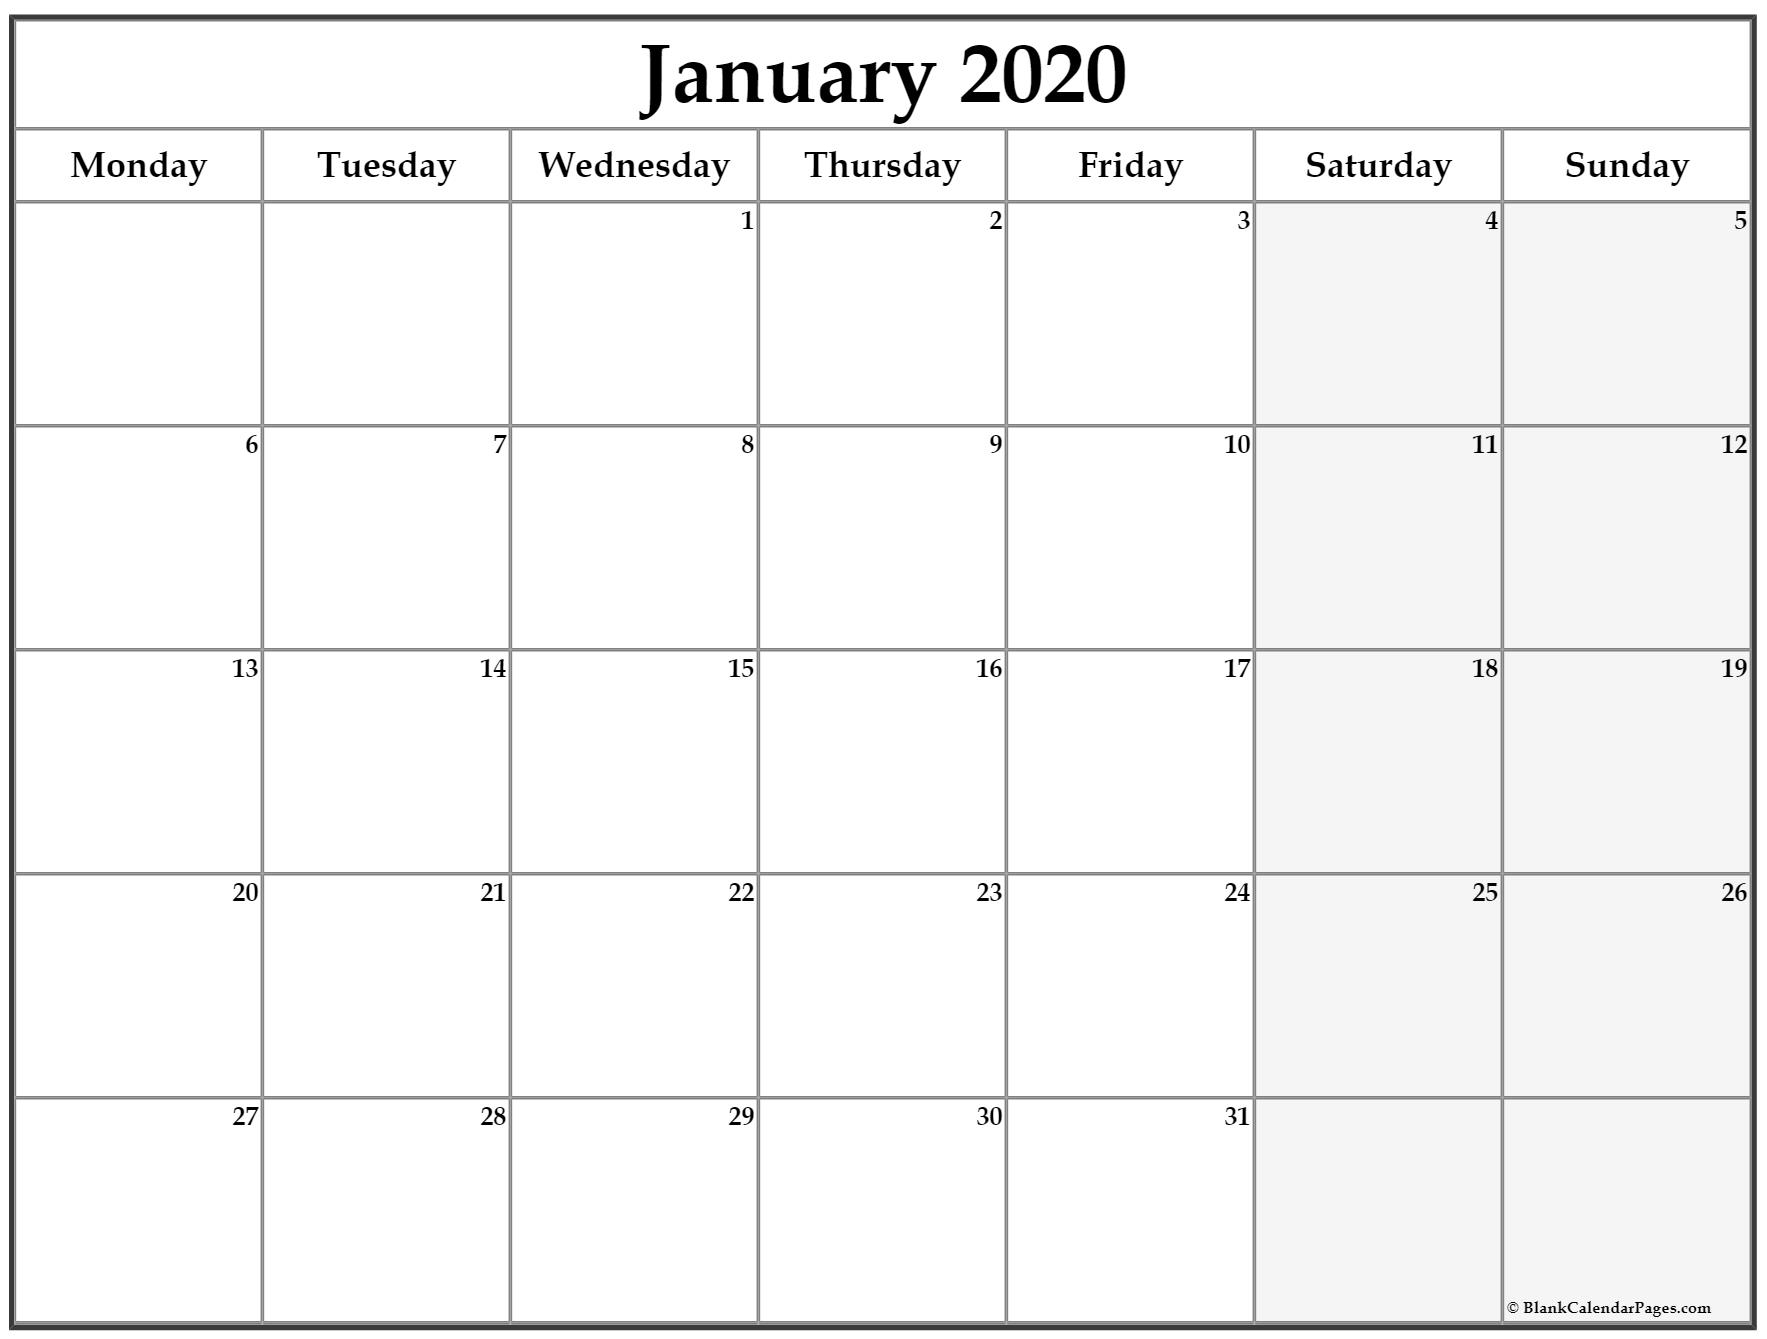 January 2020 Monday Calendar | Monday To Sunday within 2020 Monday To Sunday Calendar Printable